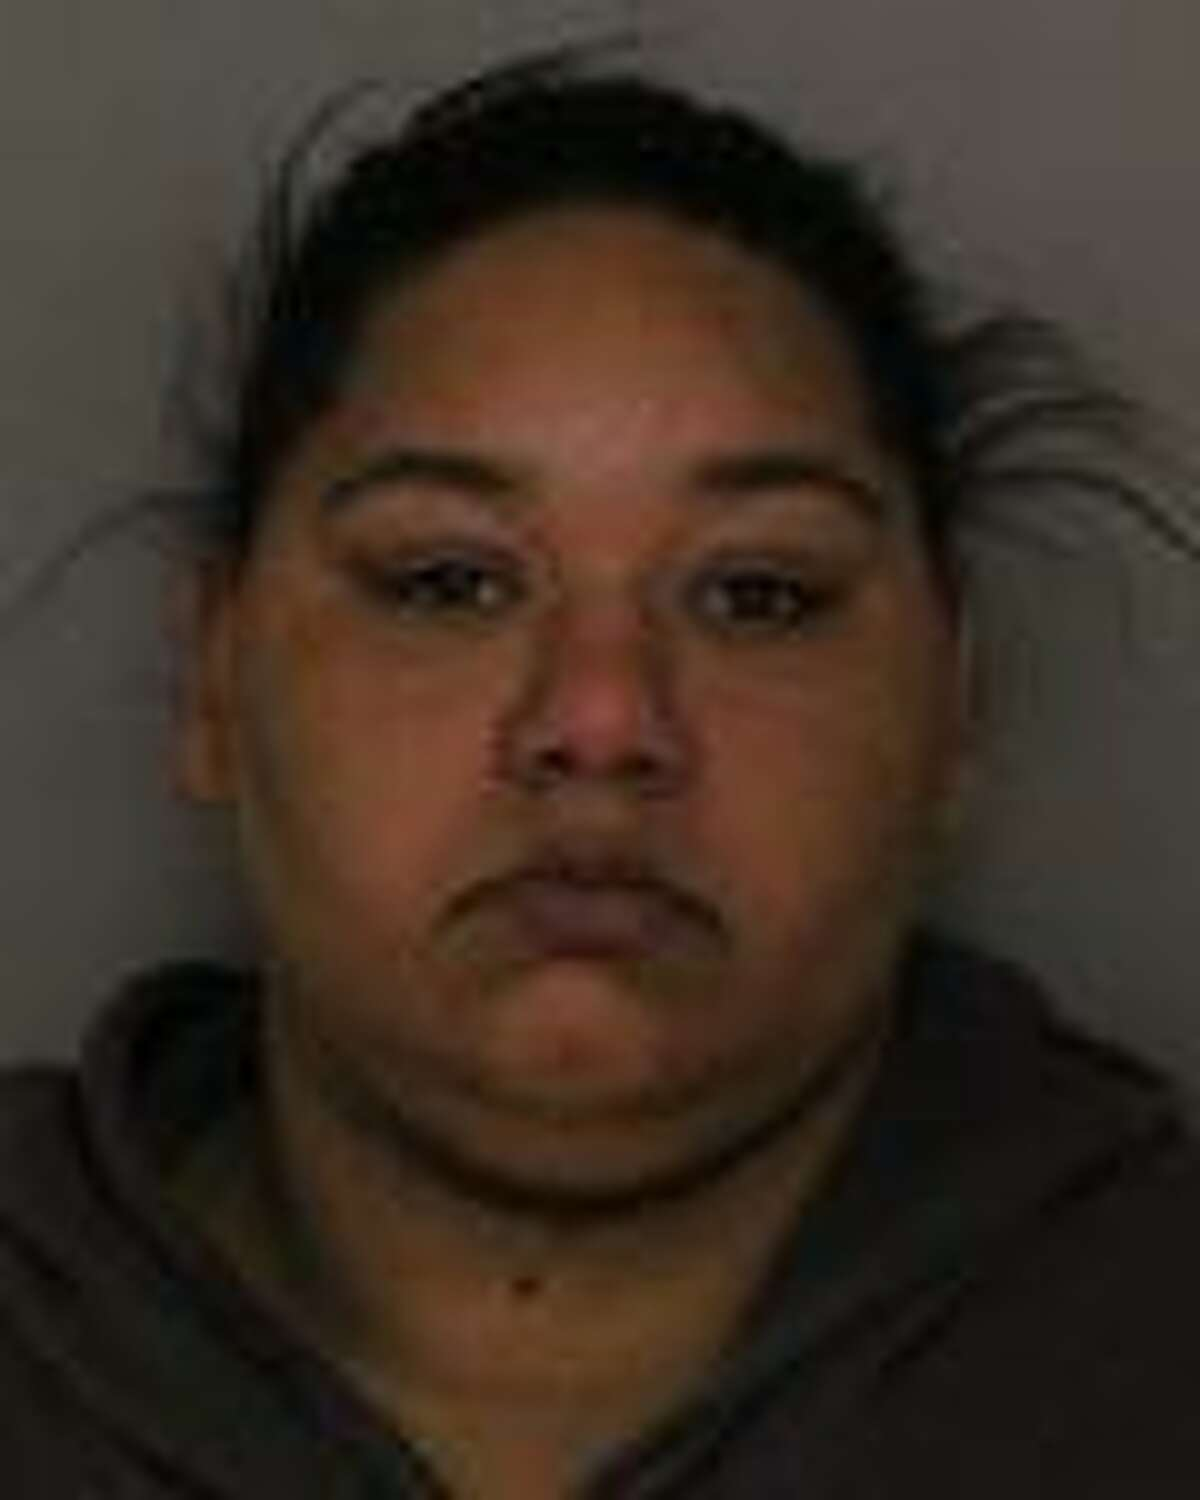 Melissa M. Crandall, 23, of Troy. (State Police)